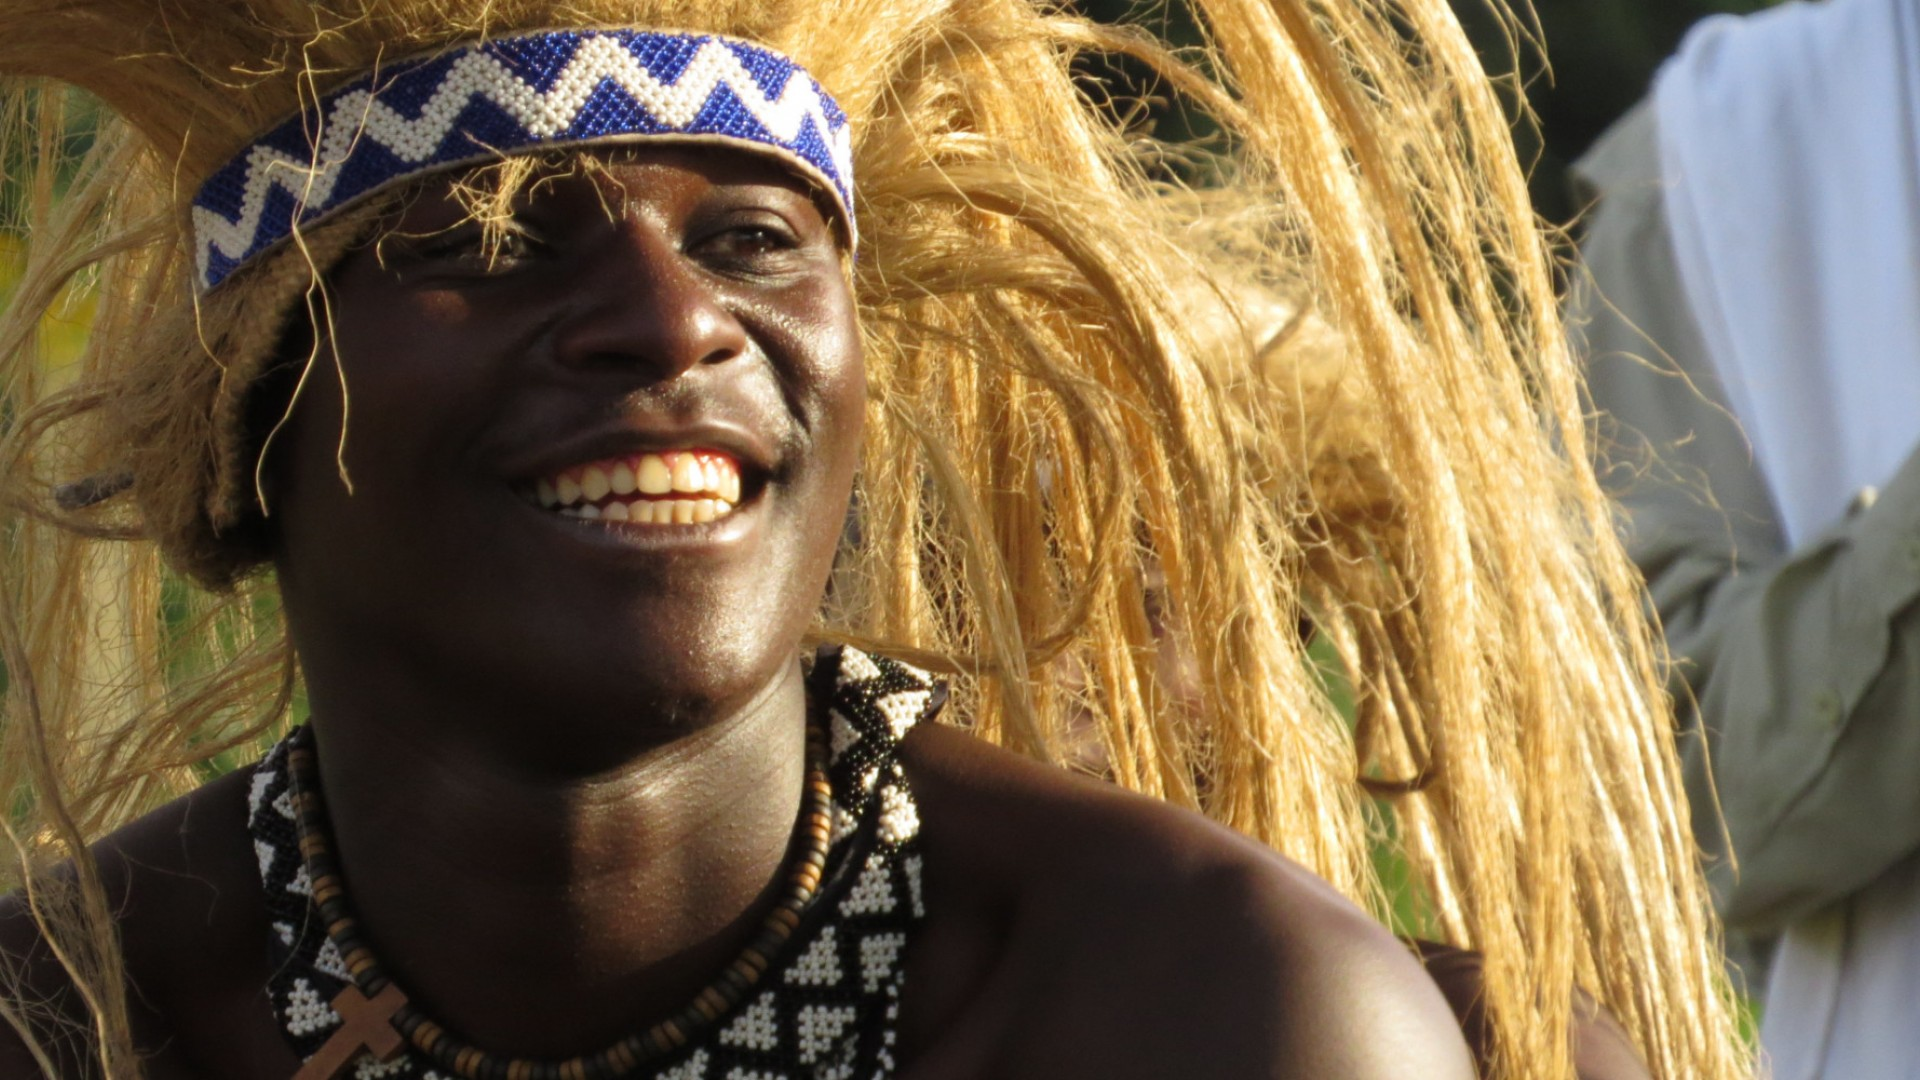 man in traditional headdress in Rwanda